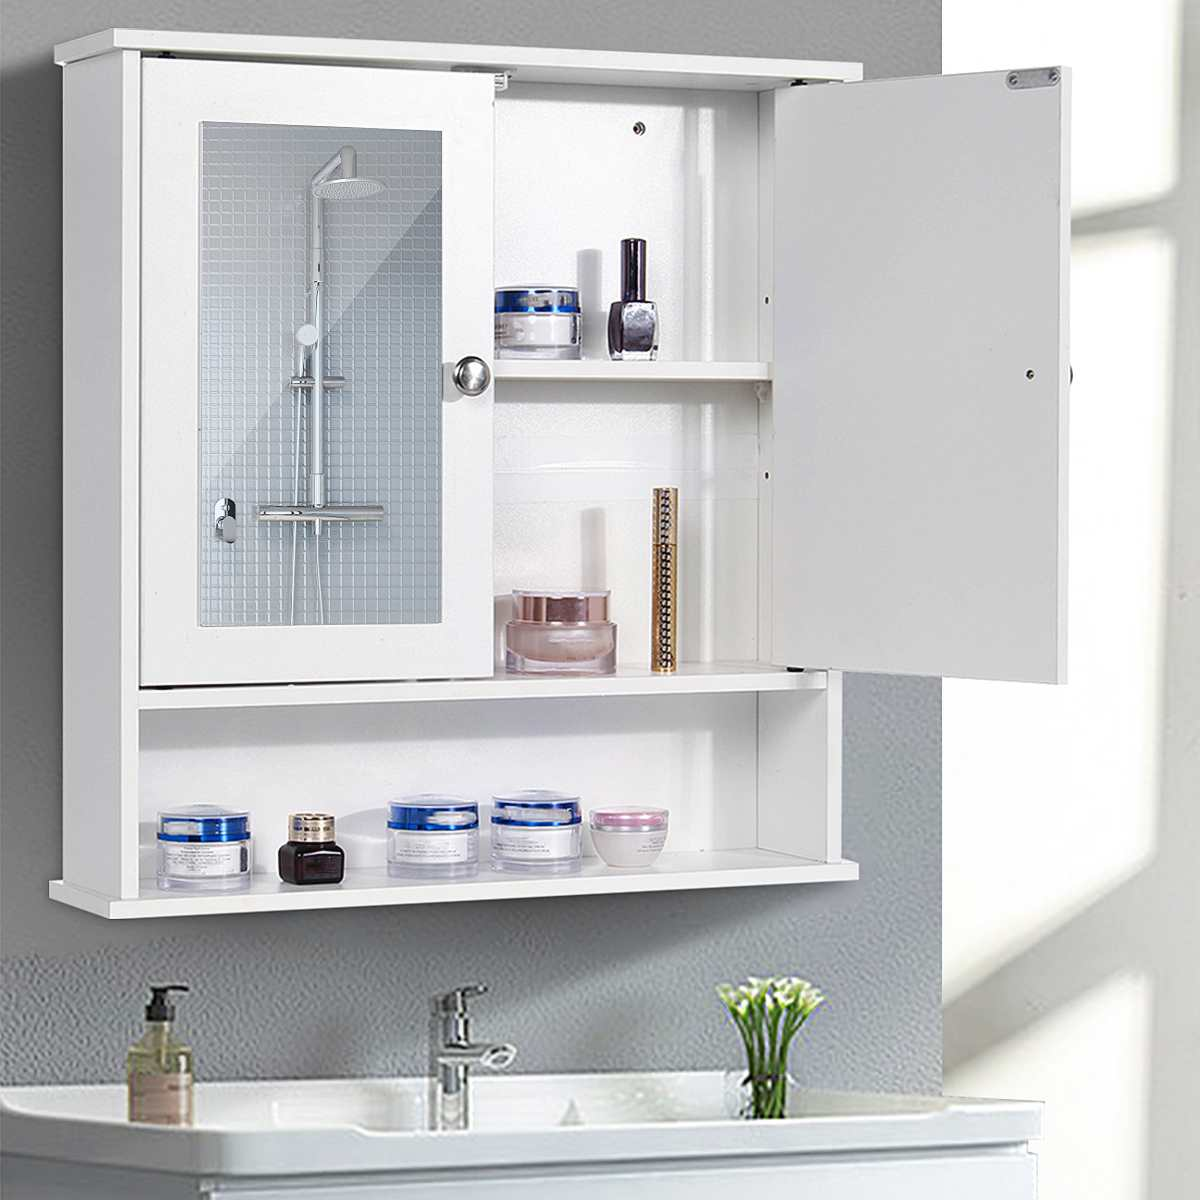 58 X 56 13cm Bathroom Cabinet With